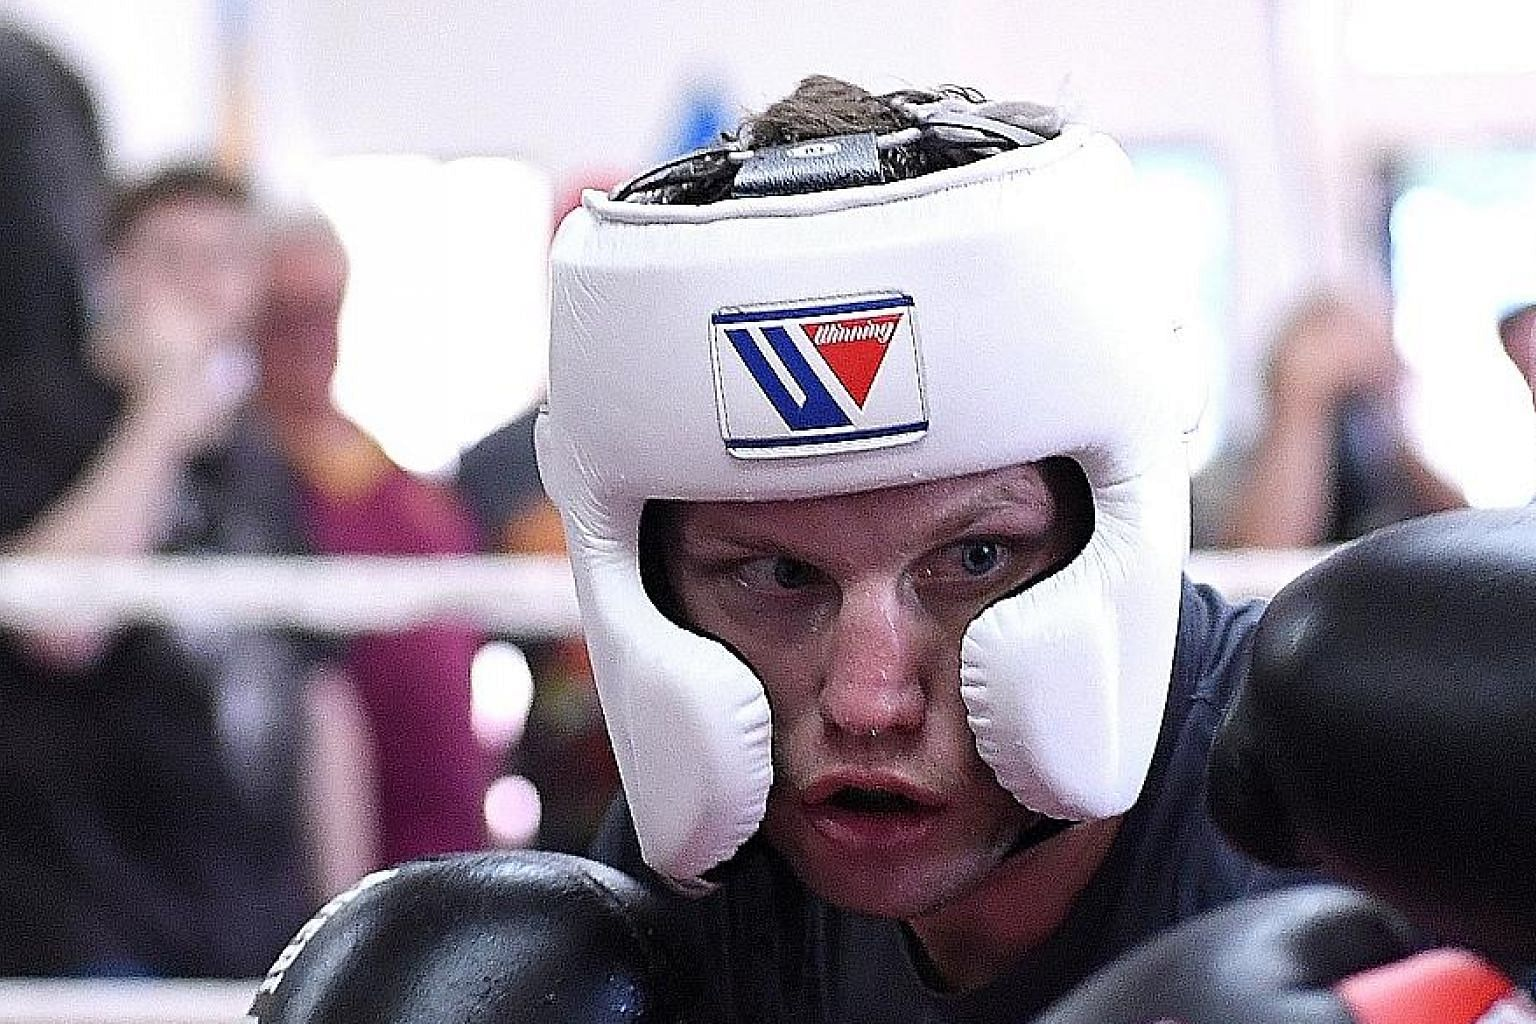 Australia's Jeff Horn during a sparring session against Czar Amonsot, his Filipino sparring partner, last week.